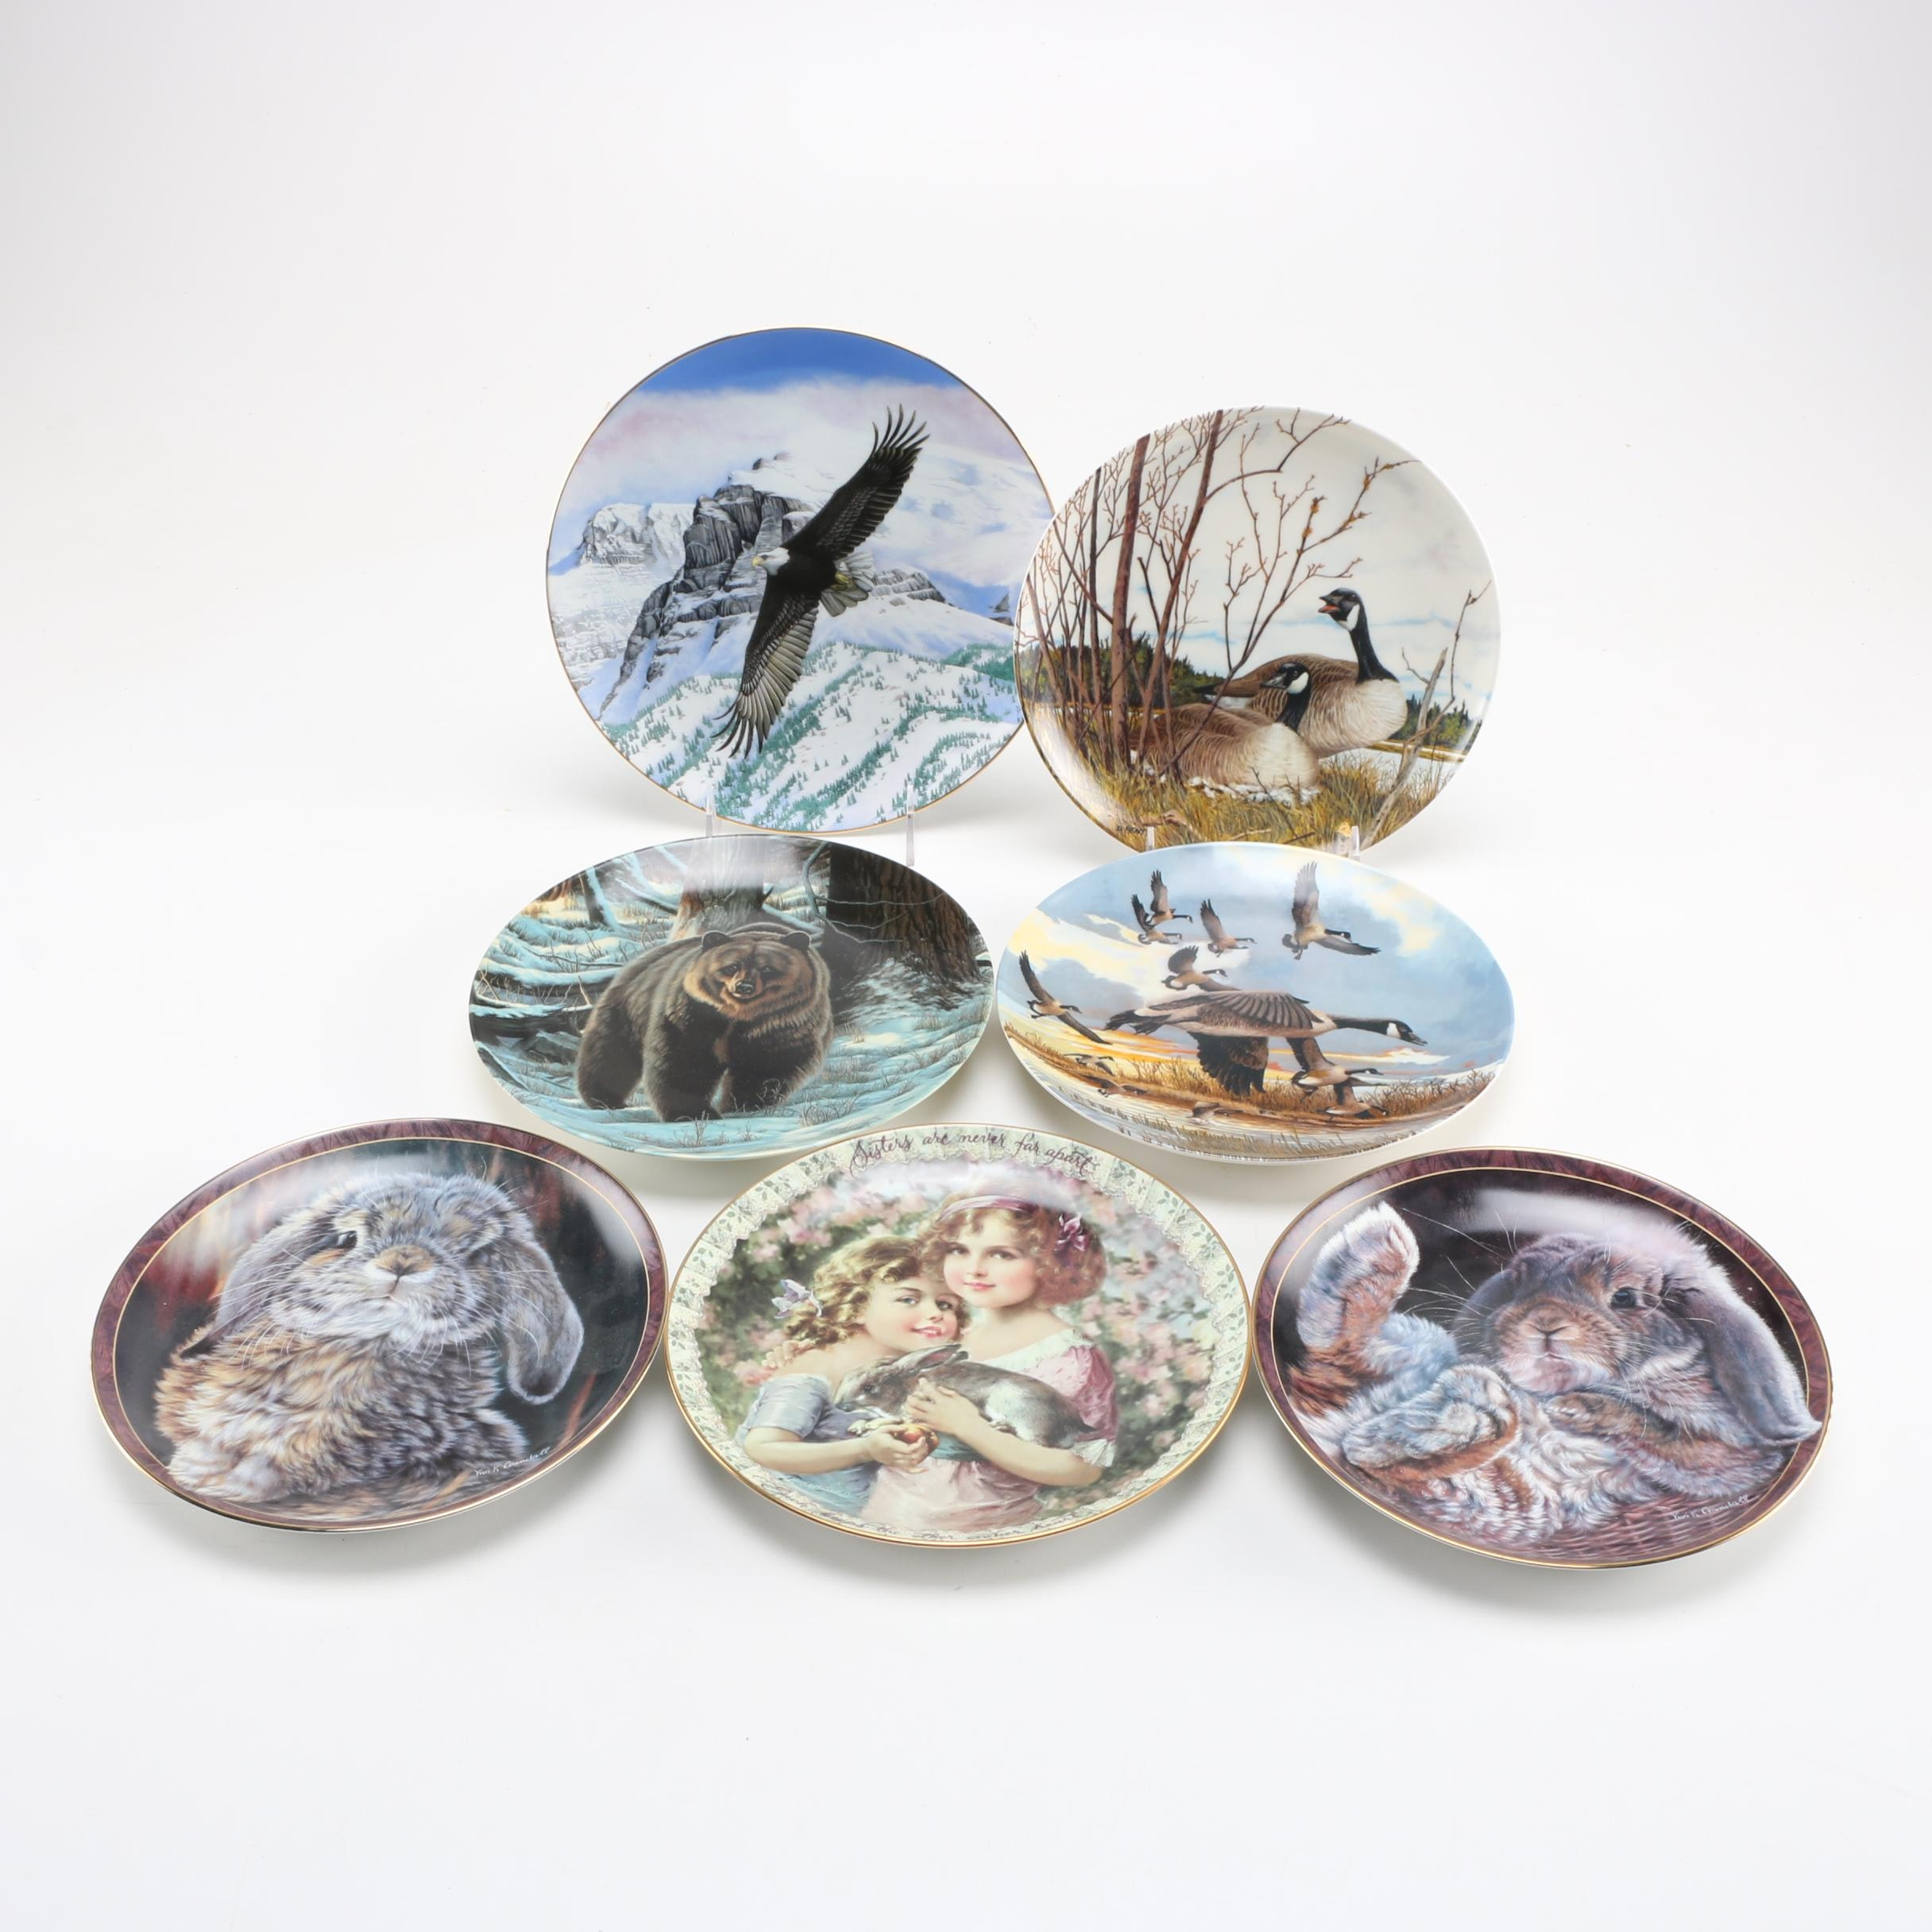 Limited Edition Plates Depicting Animals and Children 1986-1998